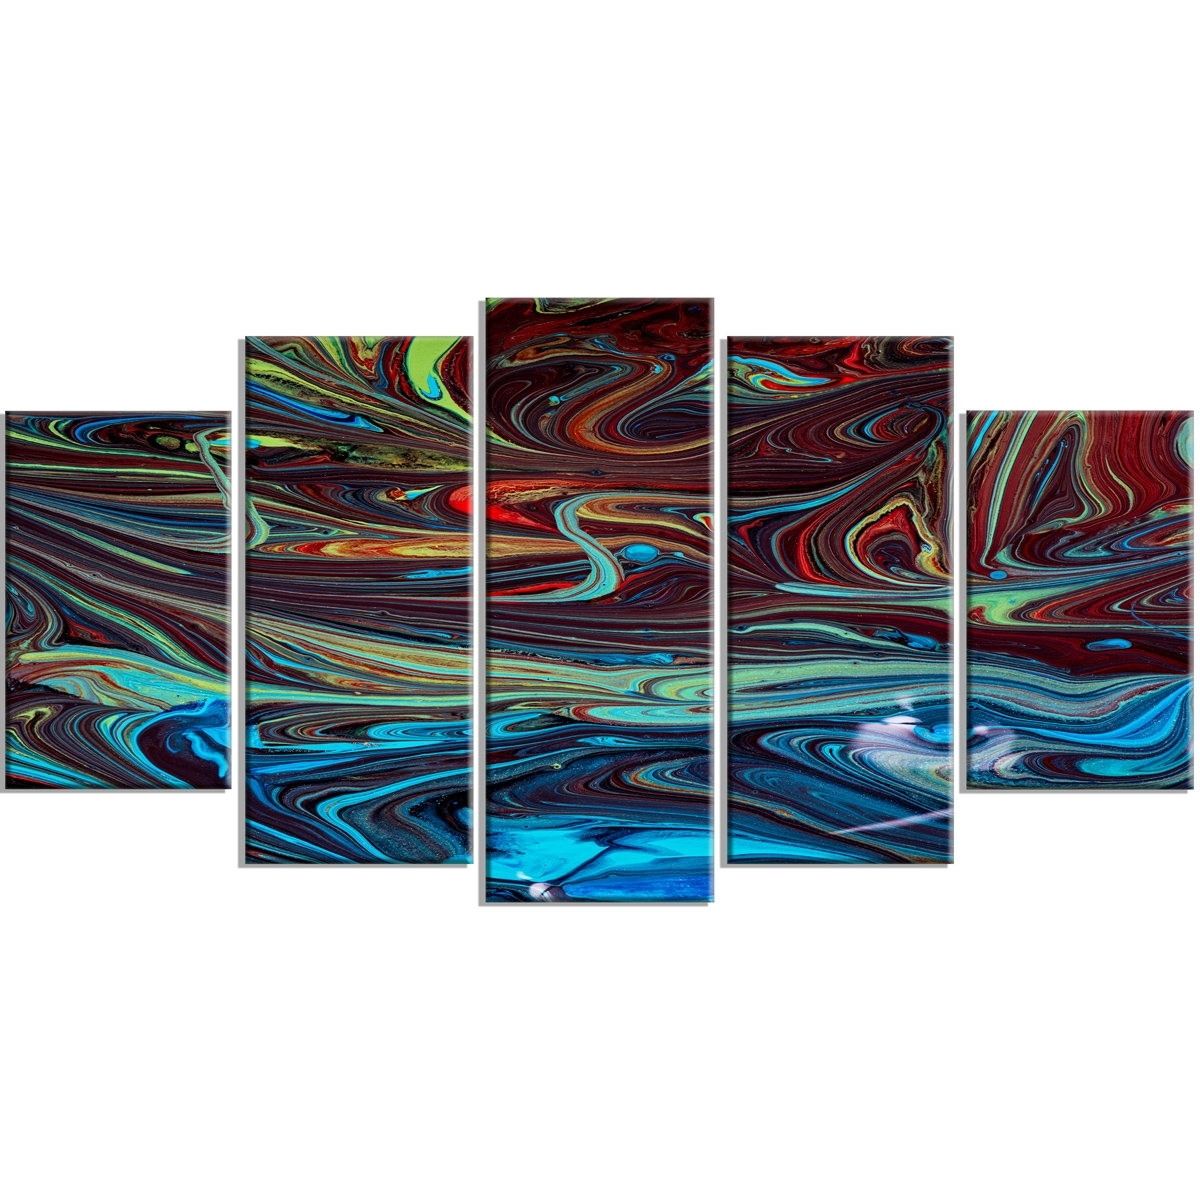 Designart 'red Blue Abstract Acrylic Paint Mix' 5 Piece Wall Art On Within 5 Piece Wall Art Canvas (View 13 of 20)